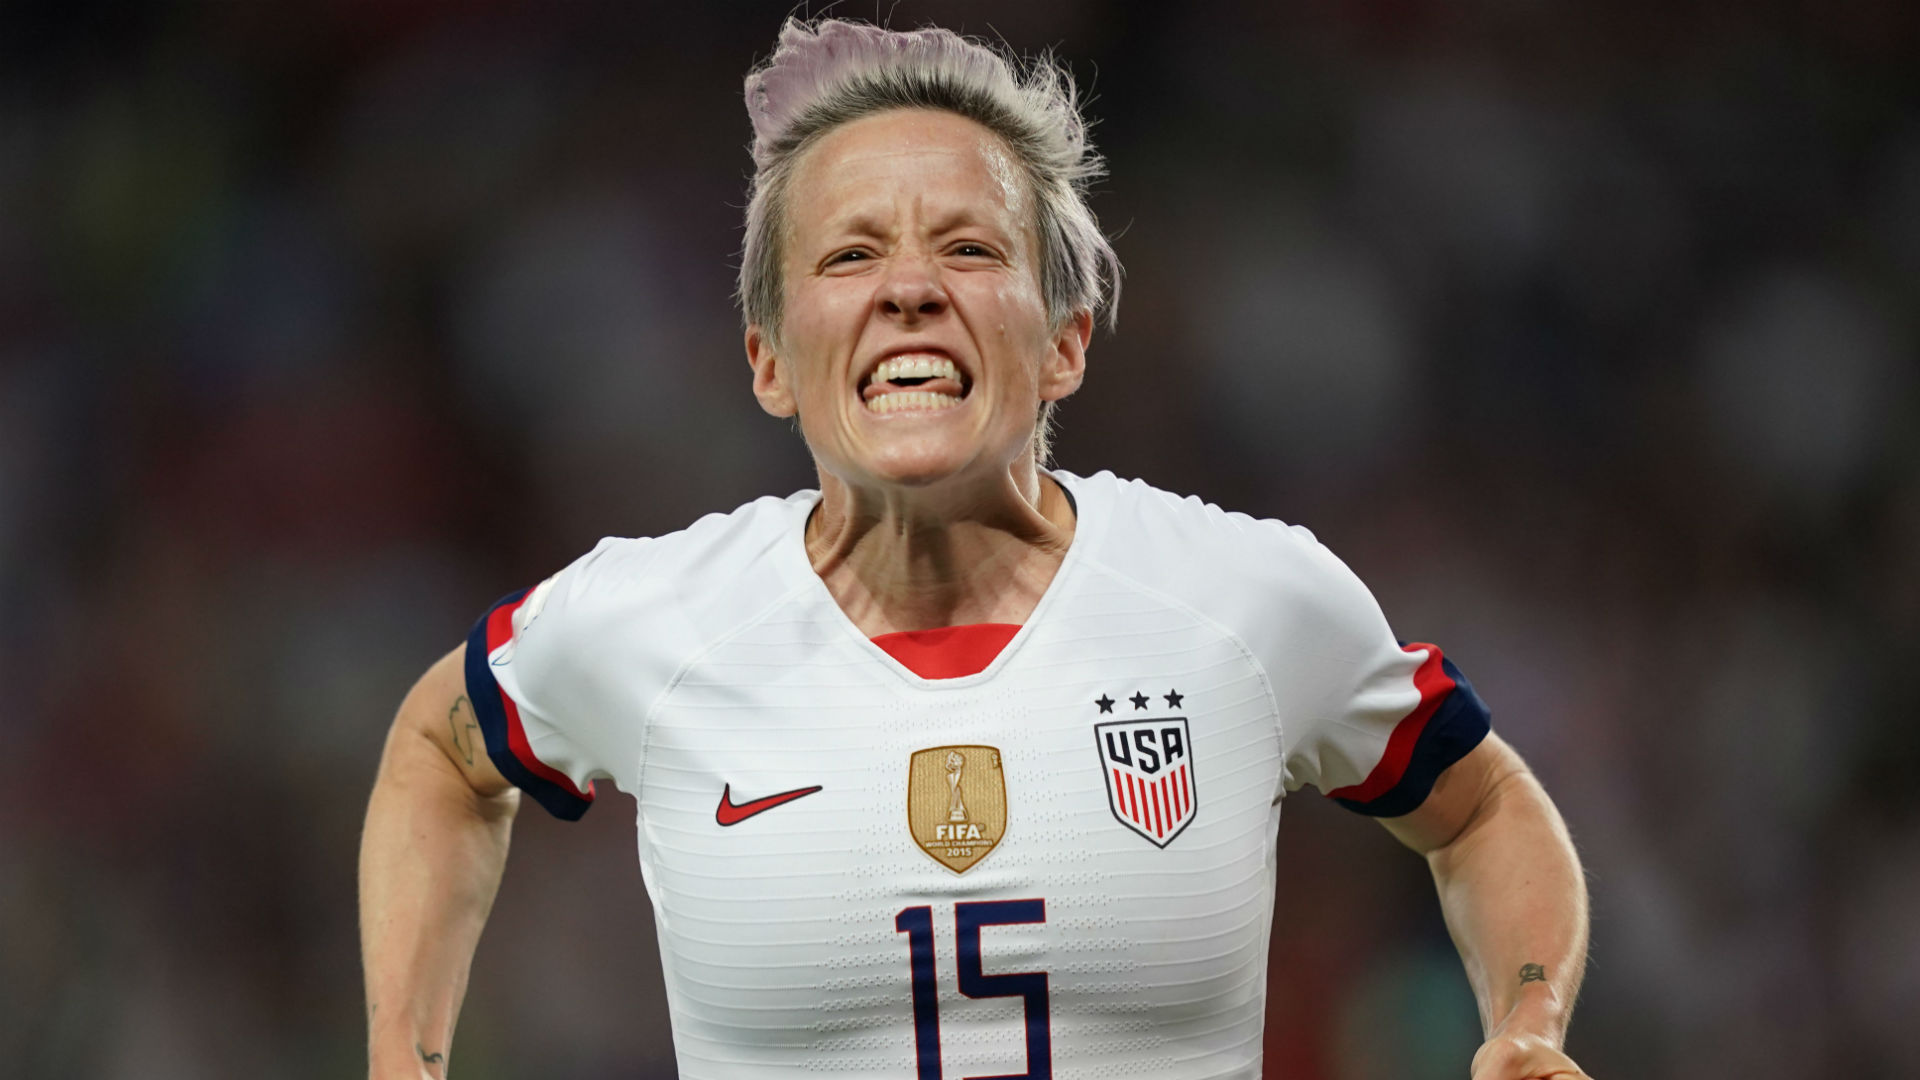 France 1 2 USWNT With firestorm around her Rapinoe delivers on 1920x1080